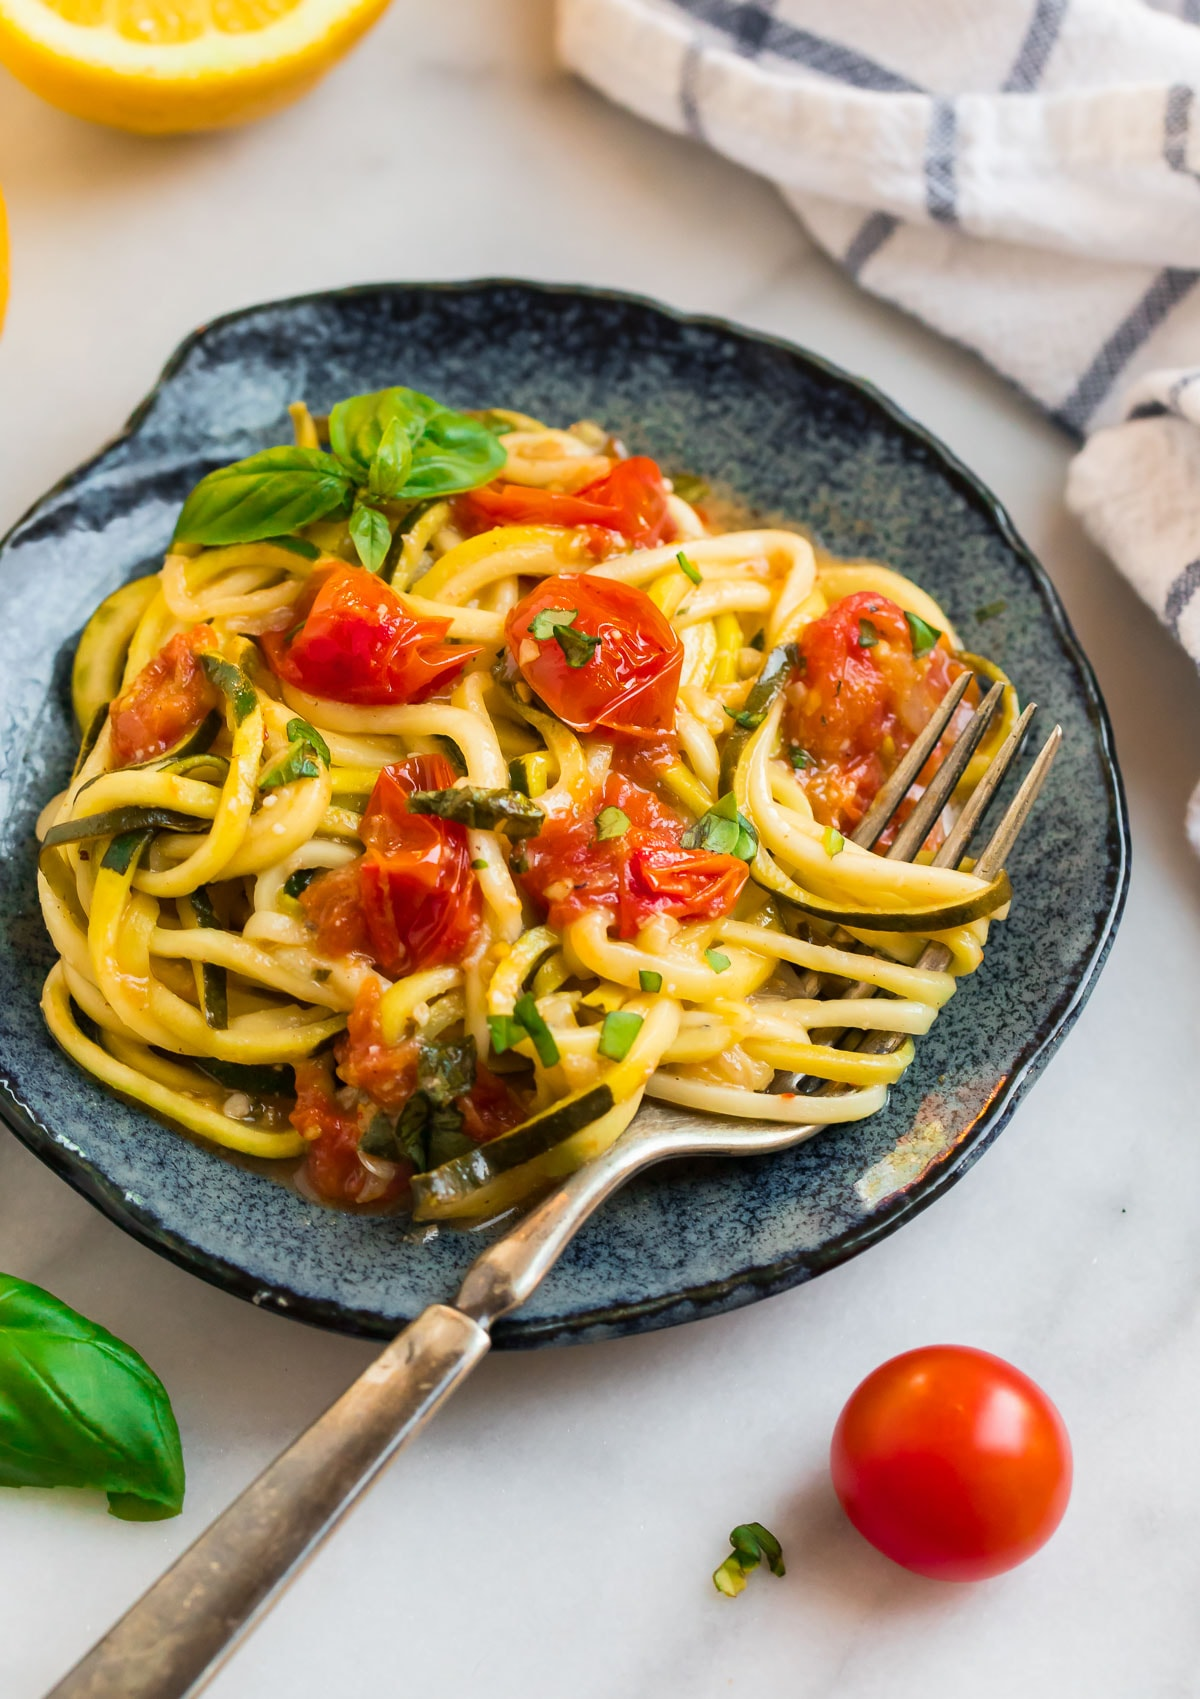 Zucchini pasta on a blue plate with tomatoes